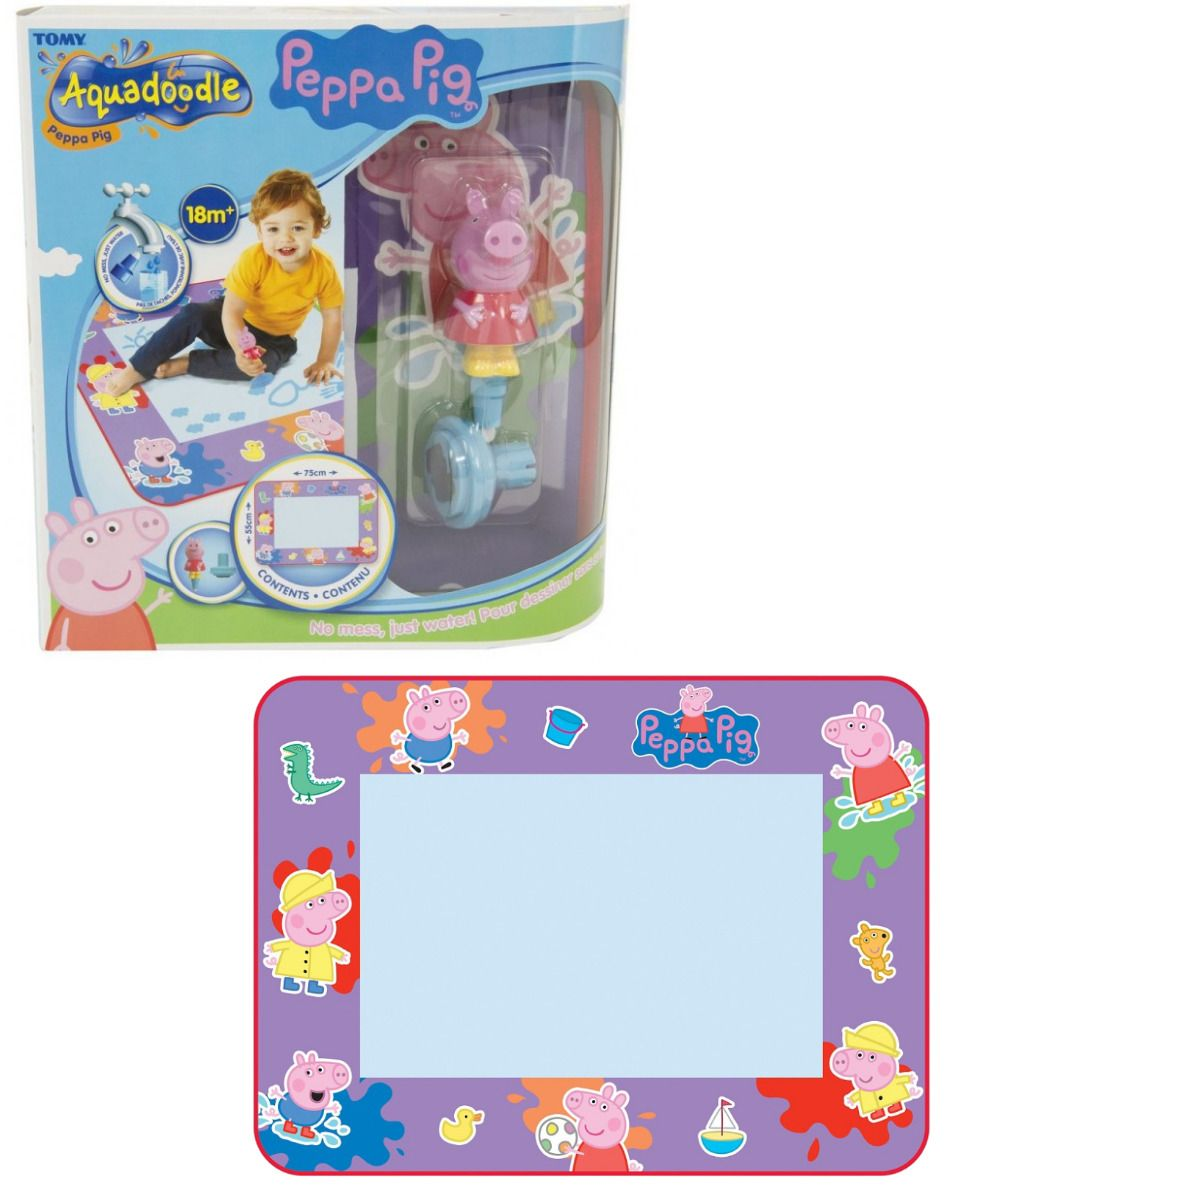 Tomy Peppa Pig Aquadoodle No Mess Just Water Ages 18 Months